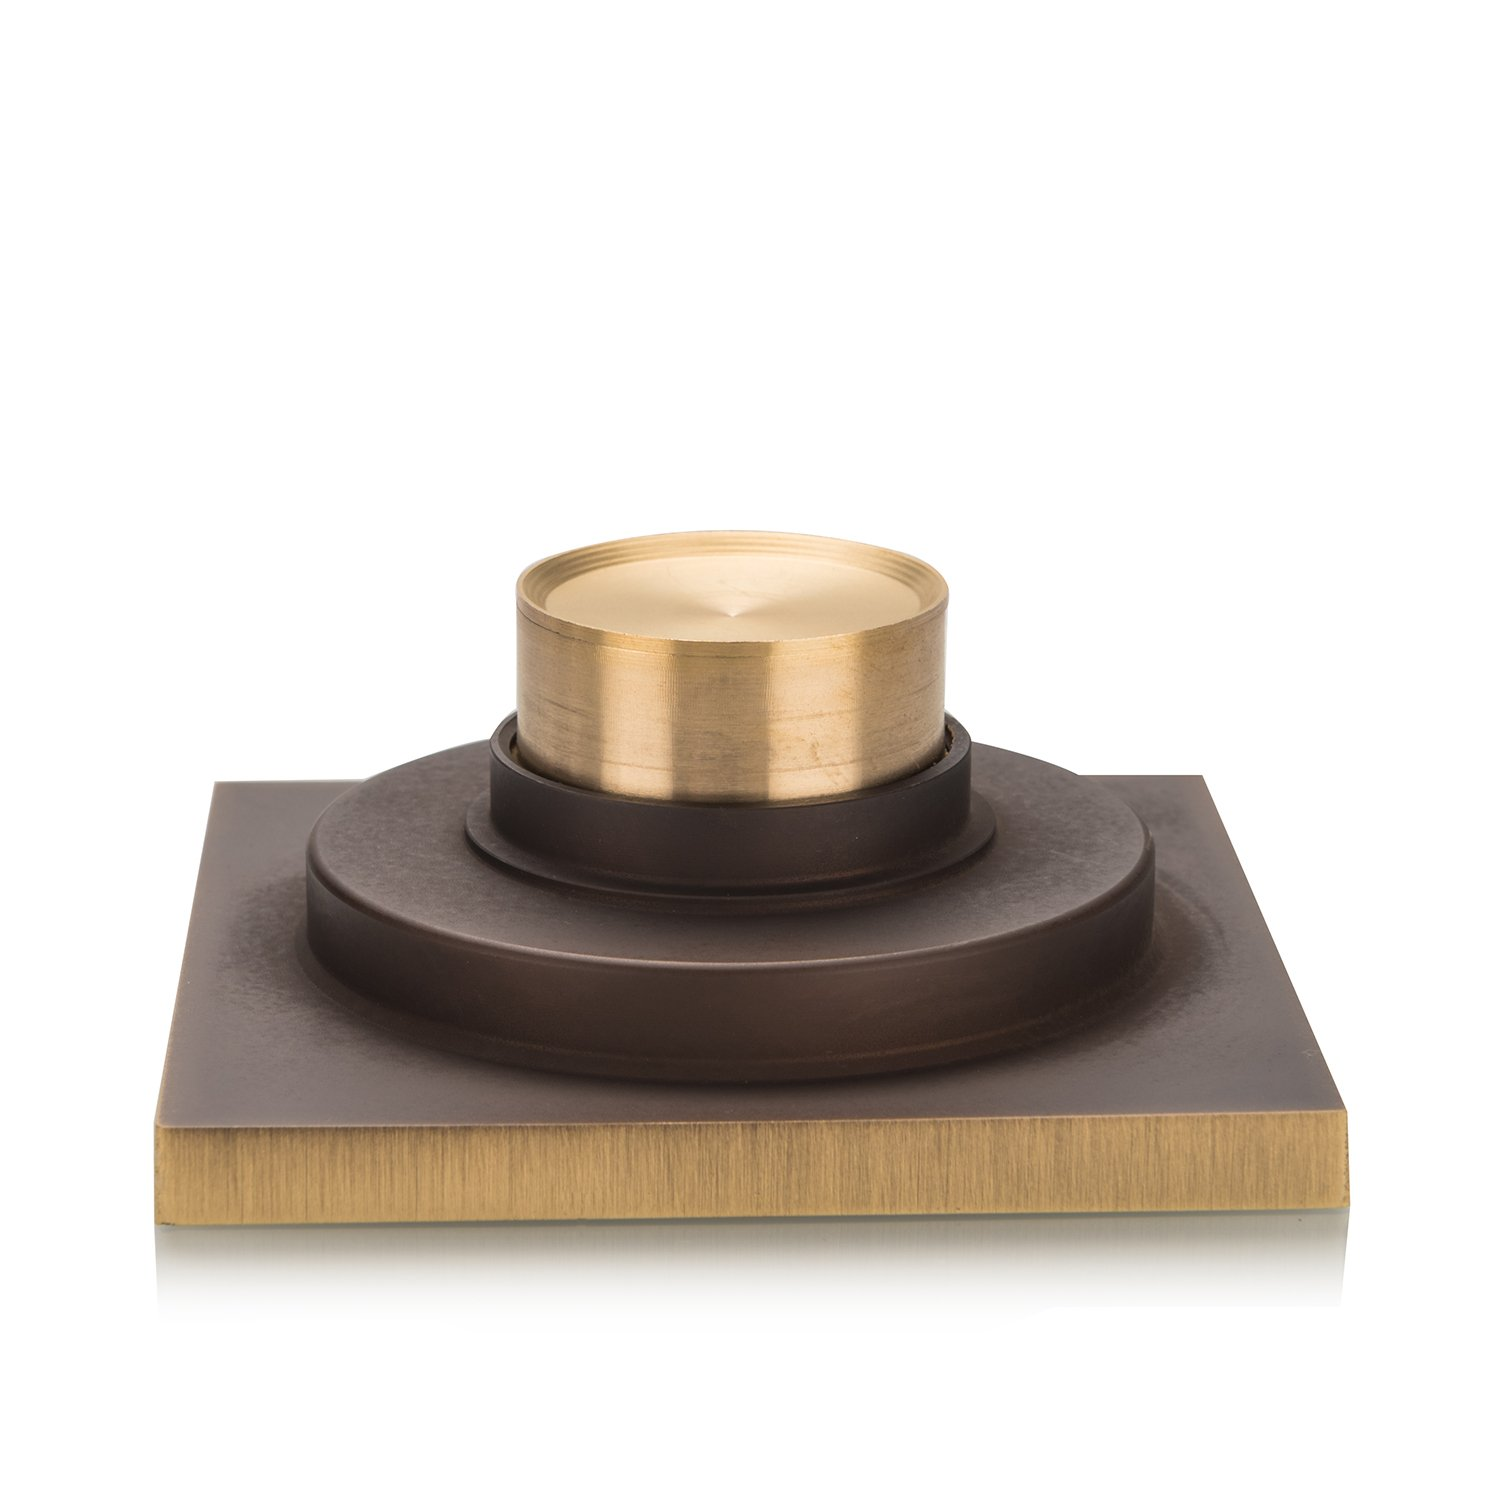 Tinya Copper//Brass Bathroom Floor Drain Square Shower Sink Drain Strainer with Removable Cover FD007 Antique for bathroom and kitchen Carved